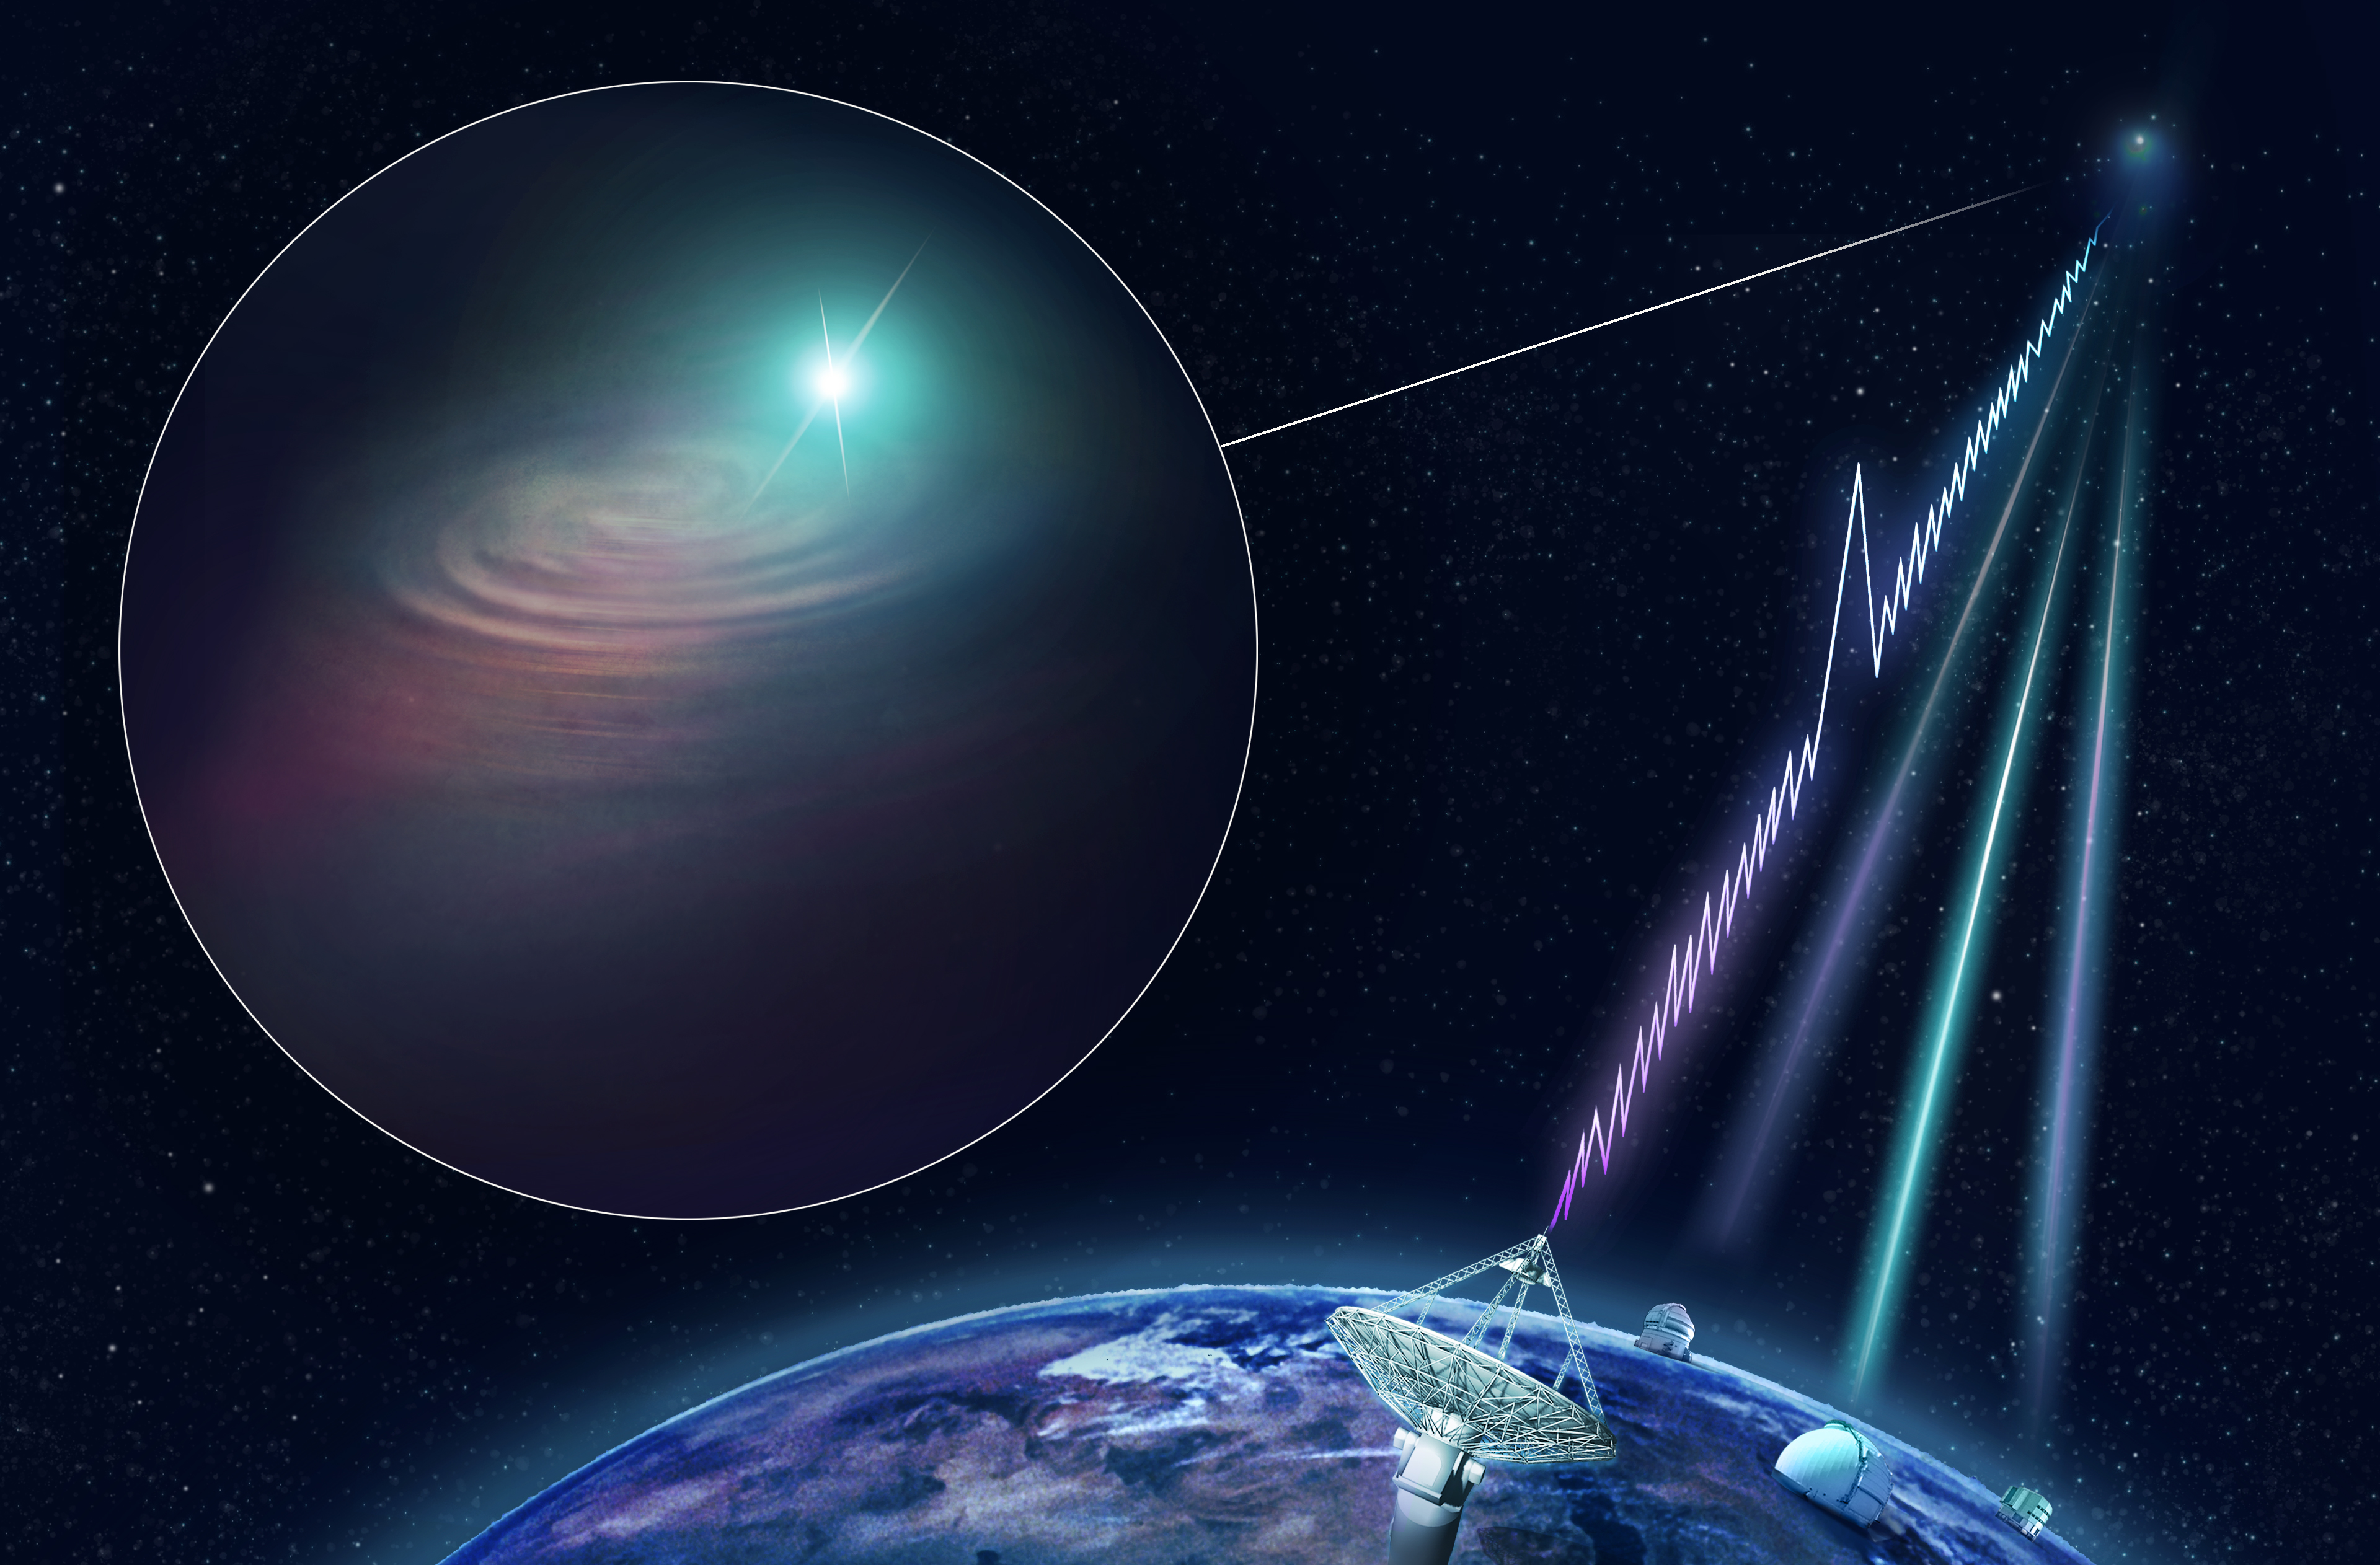 Artist's impression of CSIRO's Australian SKA Pathfinder (ASKAP) radio telescope finding a fast radio burst and determining its precise location. The KECK, VLT and Gemini South optical telescope s joined ASKAP with follow - up observations to image the host galaxy. Credit: CSIRO/Dr Andrew Howells